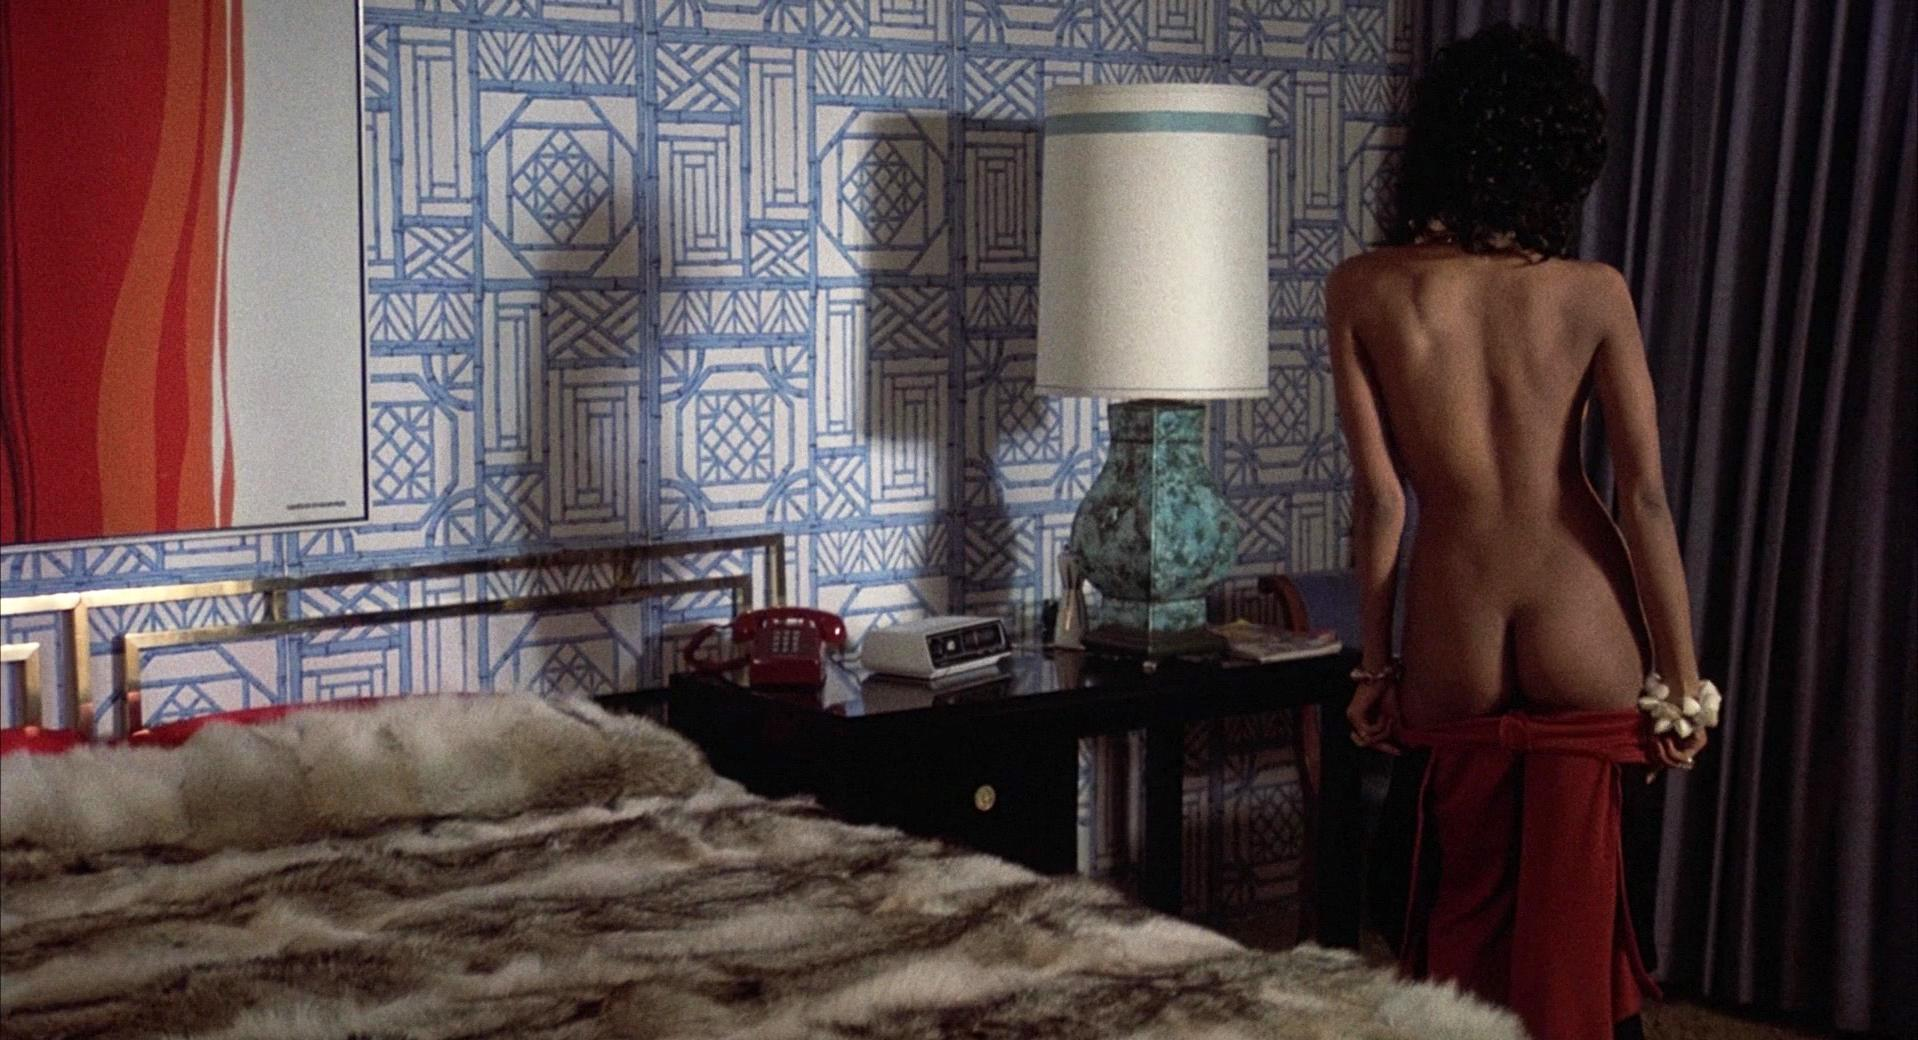 Stars Pam Grier Nude Movie Clips Gif